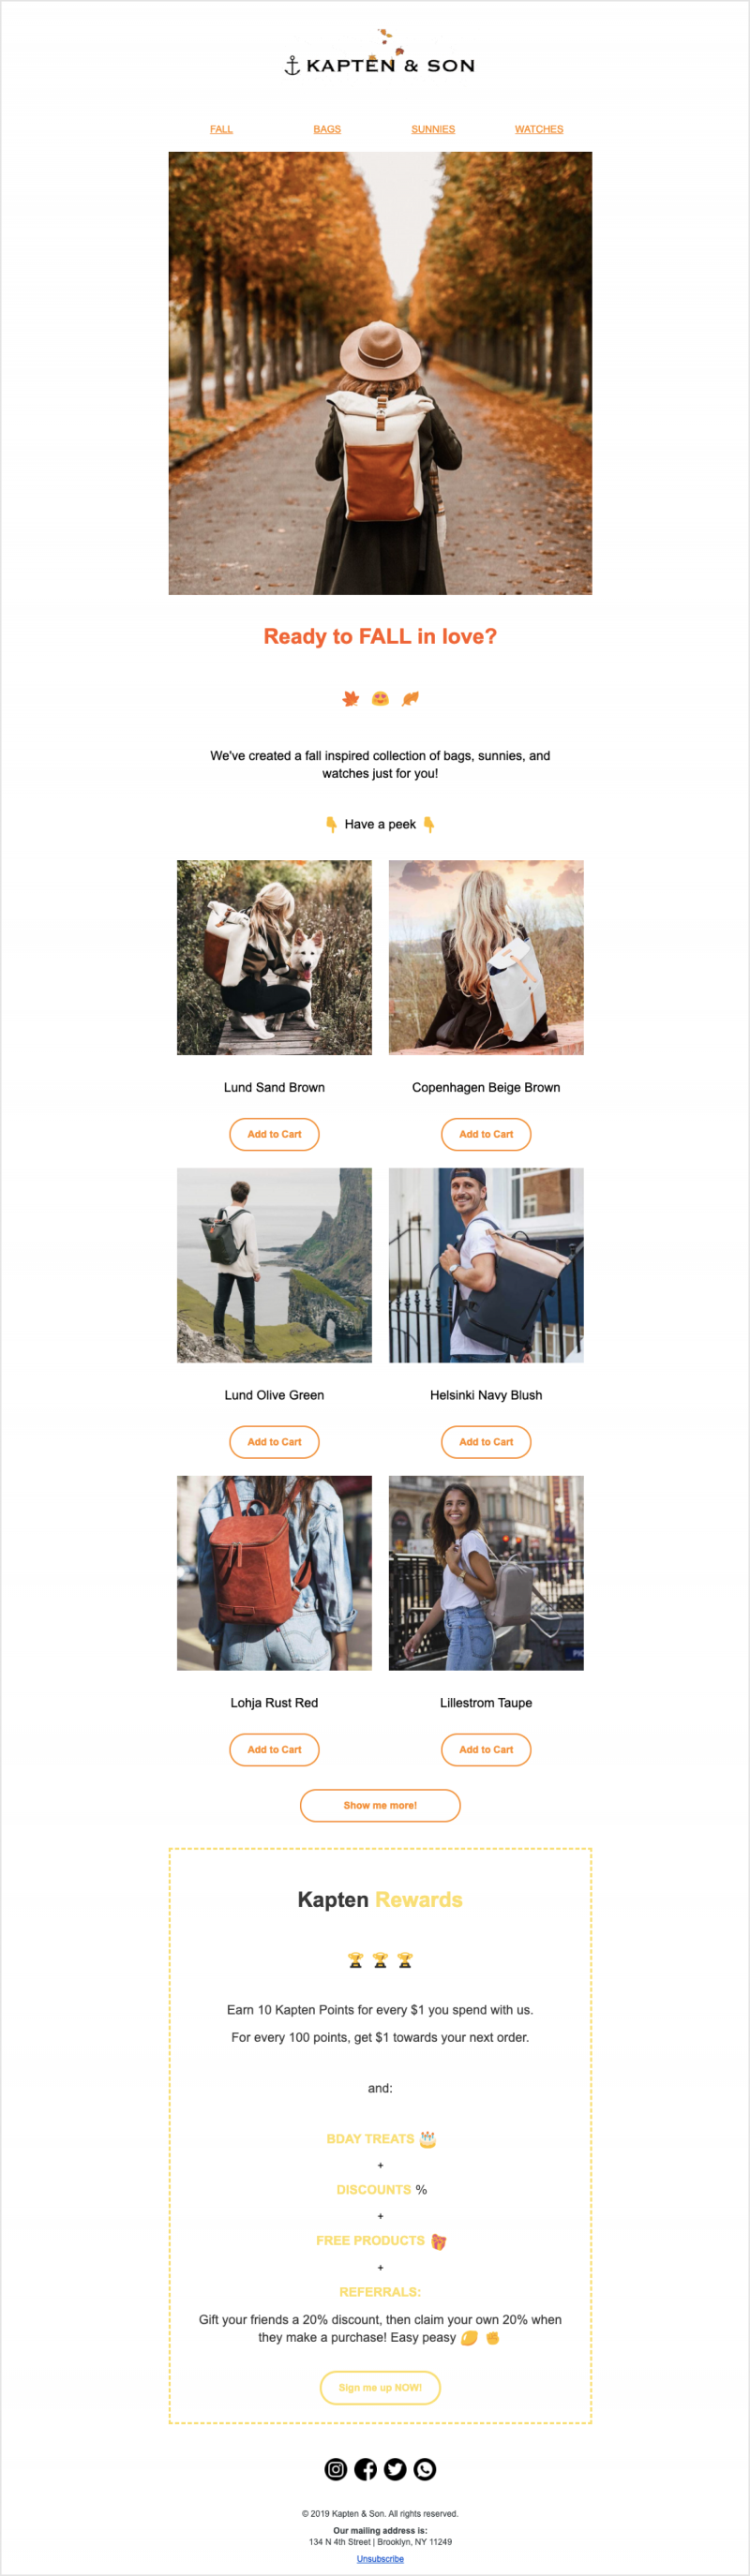 Newsletter sample featuring Fall season accessories